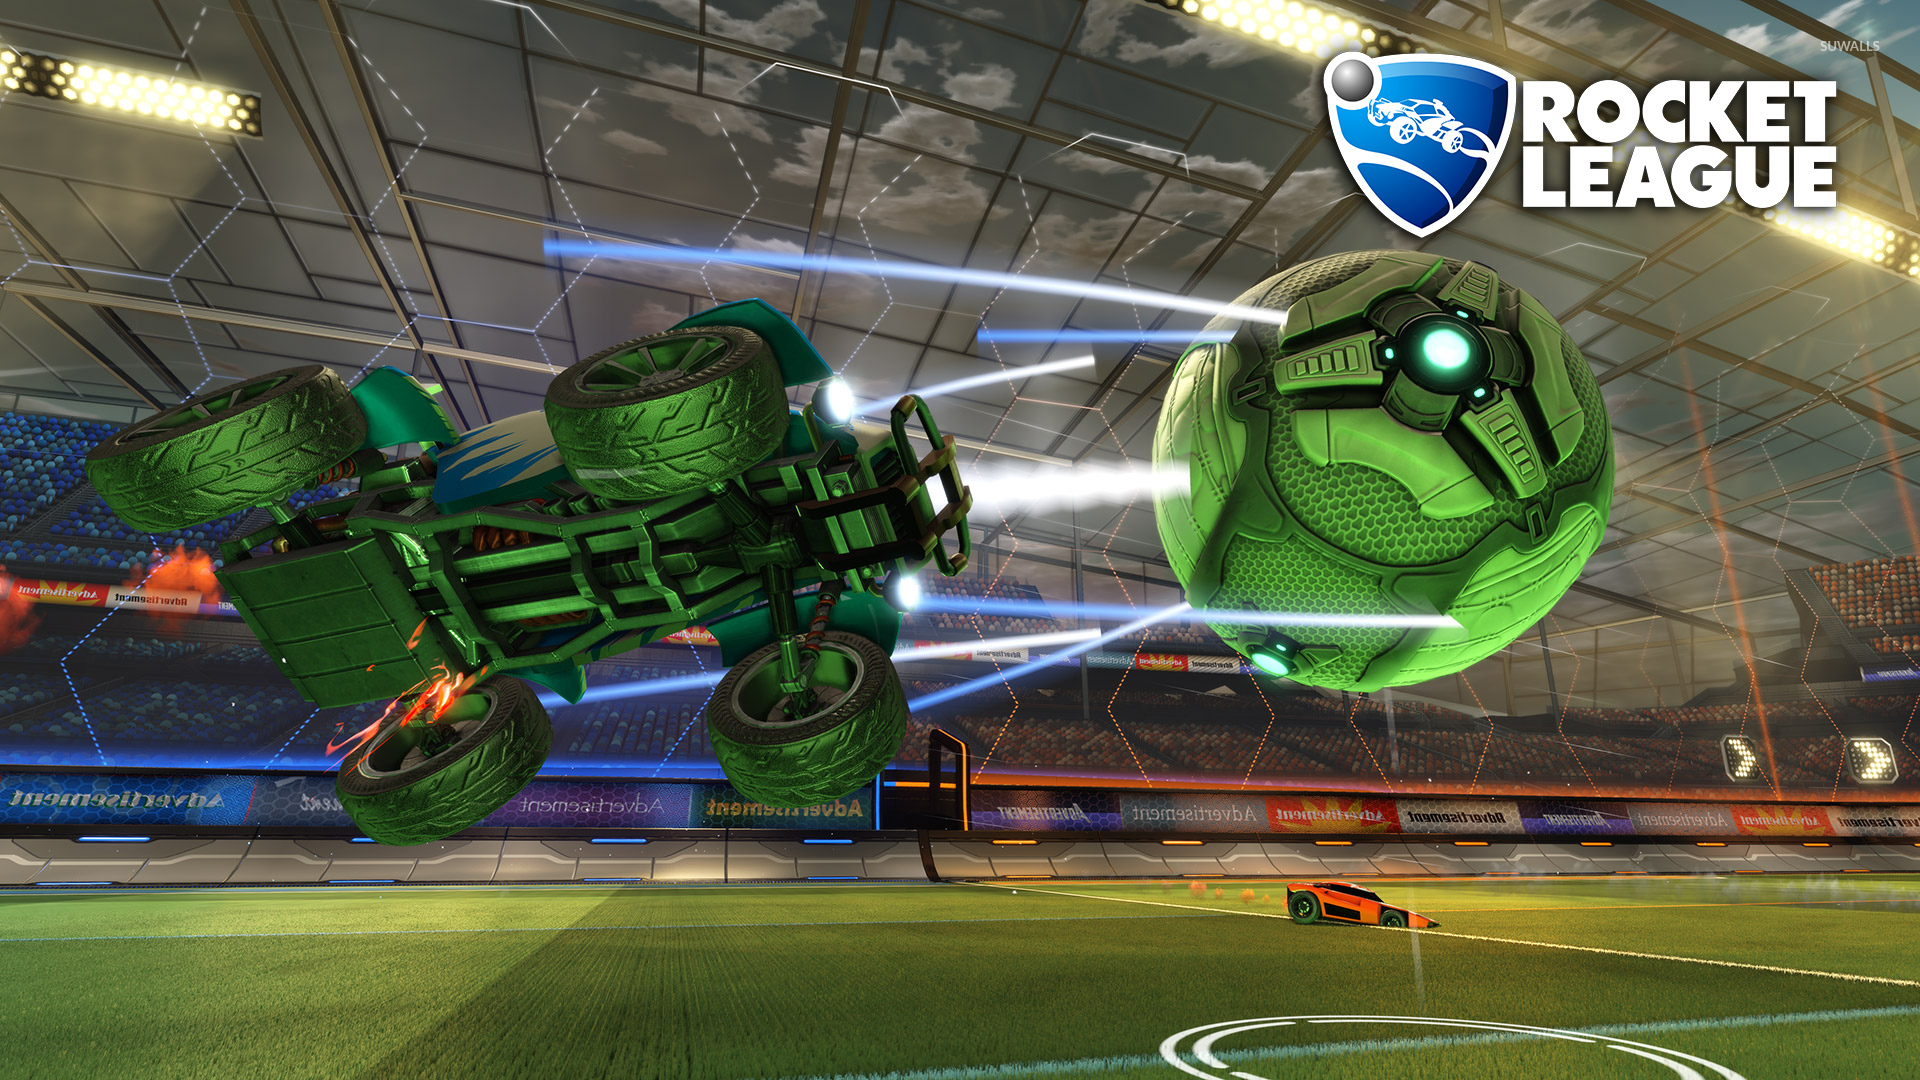 40k Quotes Wallpapers Green Car And Ball In Rocket League Wallpaper Game